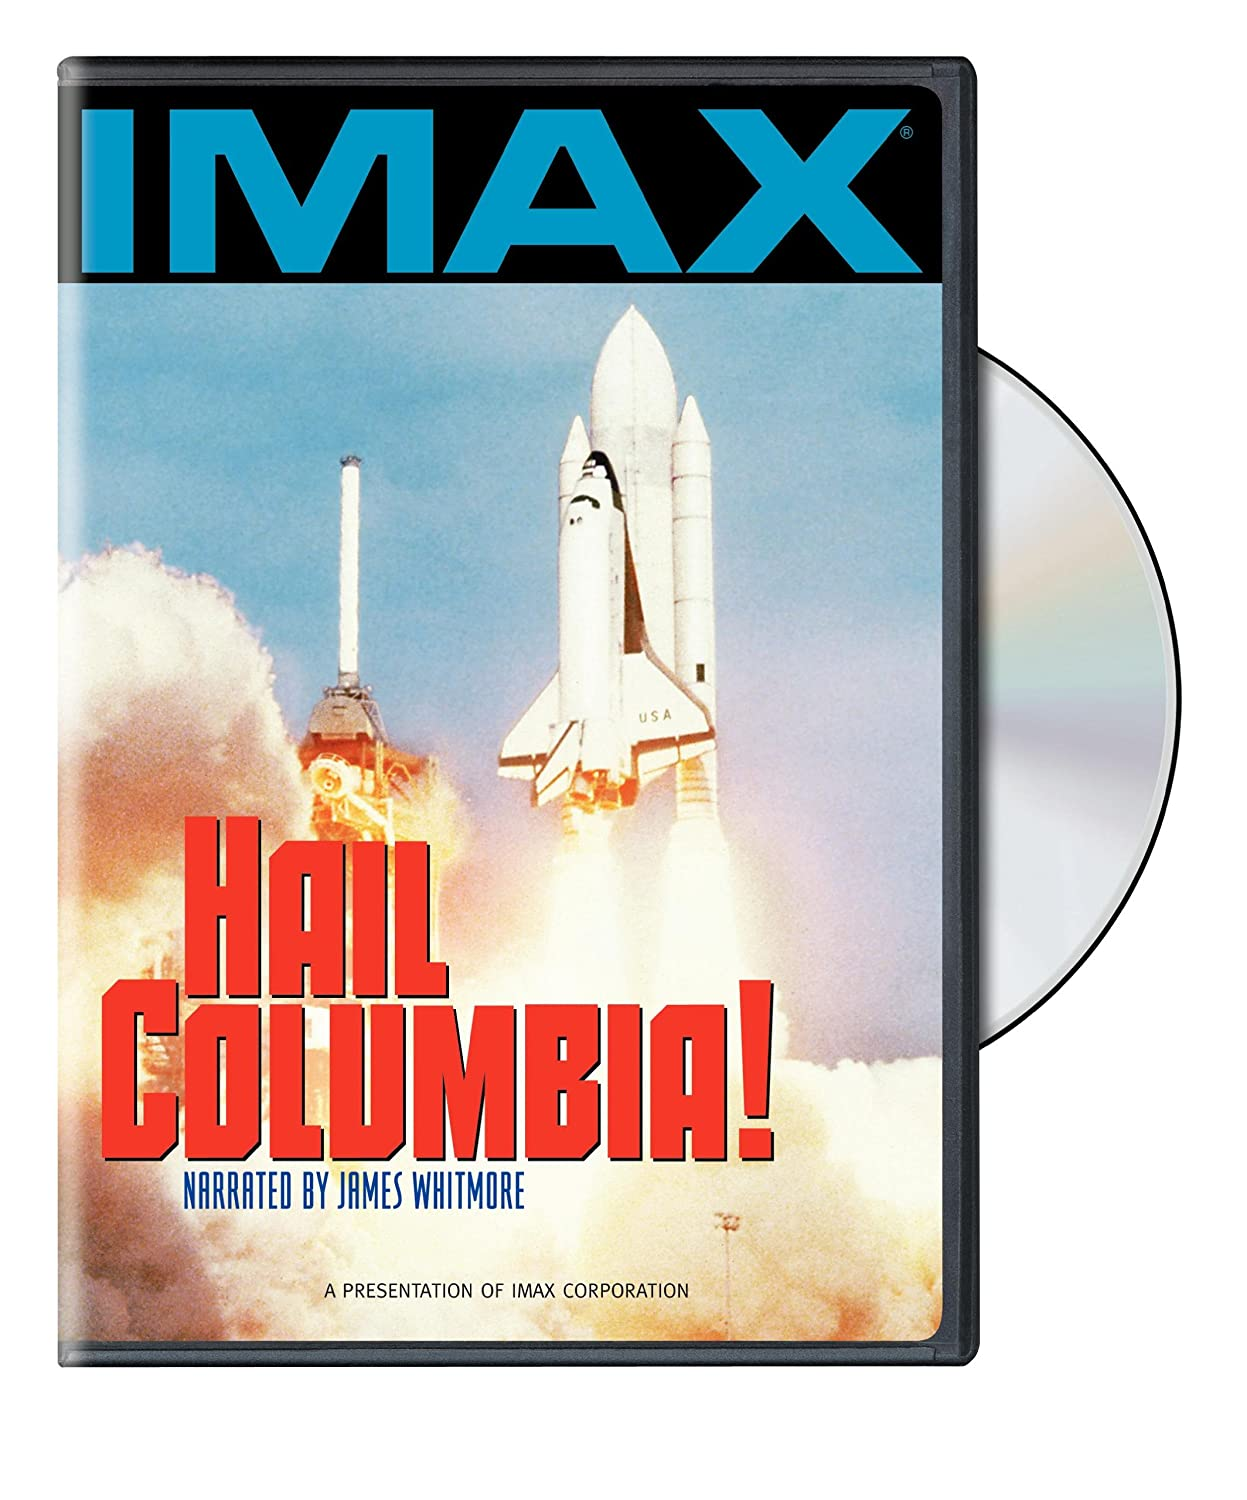 Hail Columbia! [IMAX] Graeme Ferguson IMAX / Warner Home Video Documentary Movie